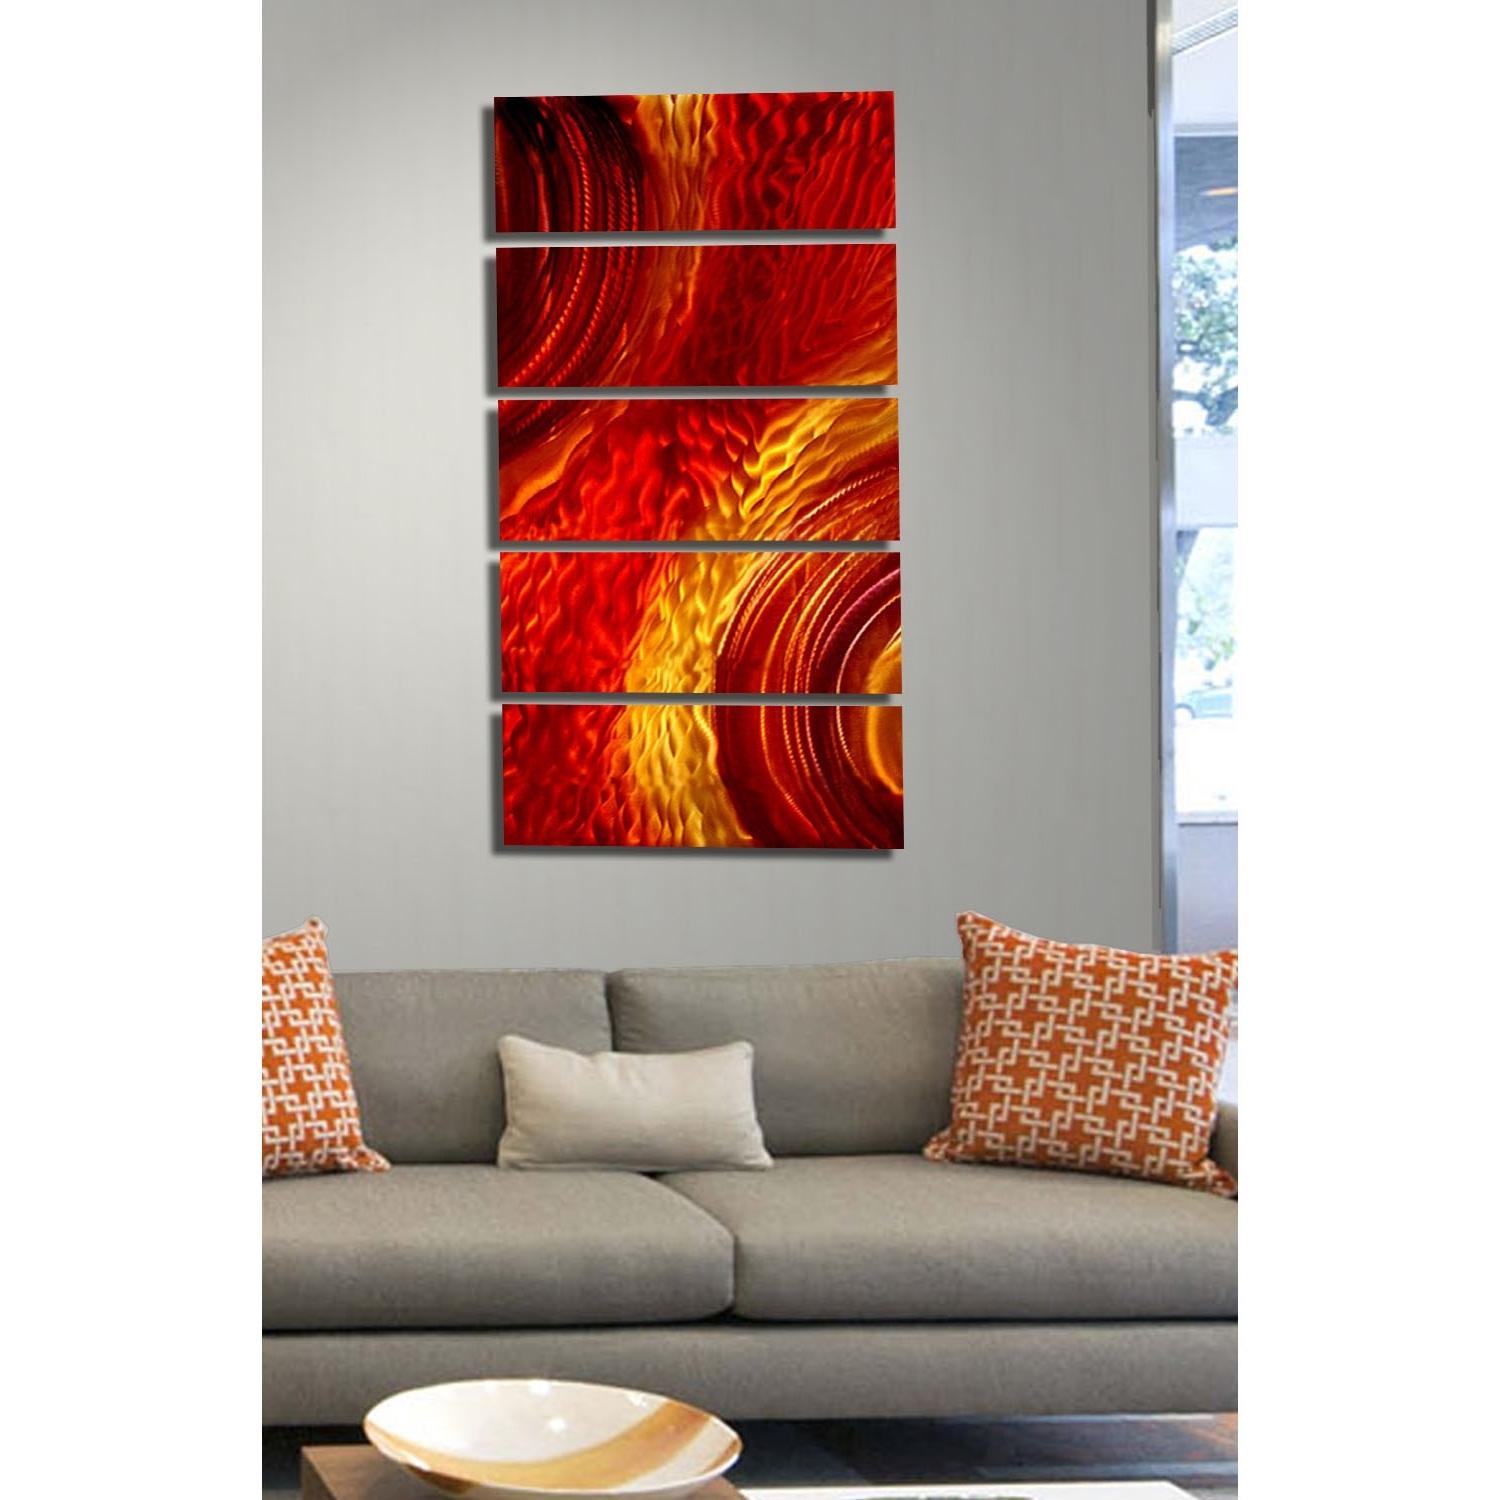 Magma – Red And Gold Metal Wall Art – 5 Panel Wall Décorjon In Preferred Orange Wall Art (View 7 of 15)